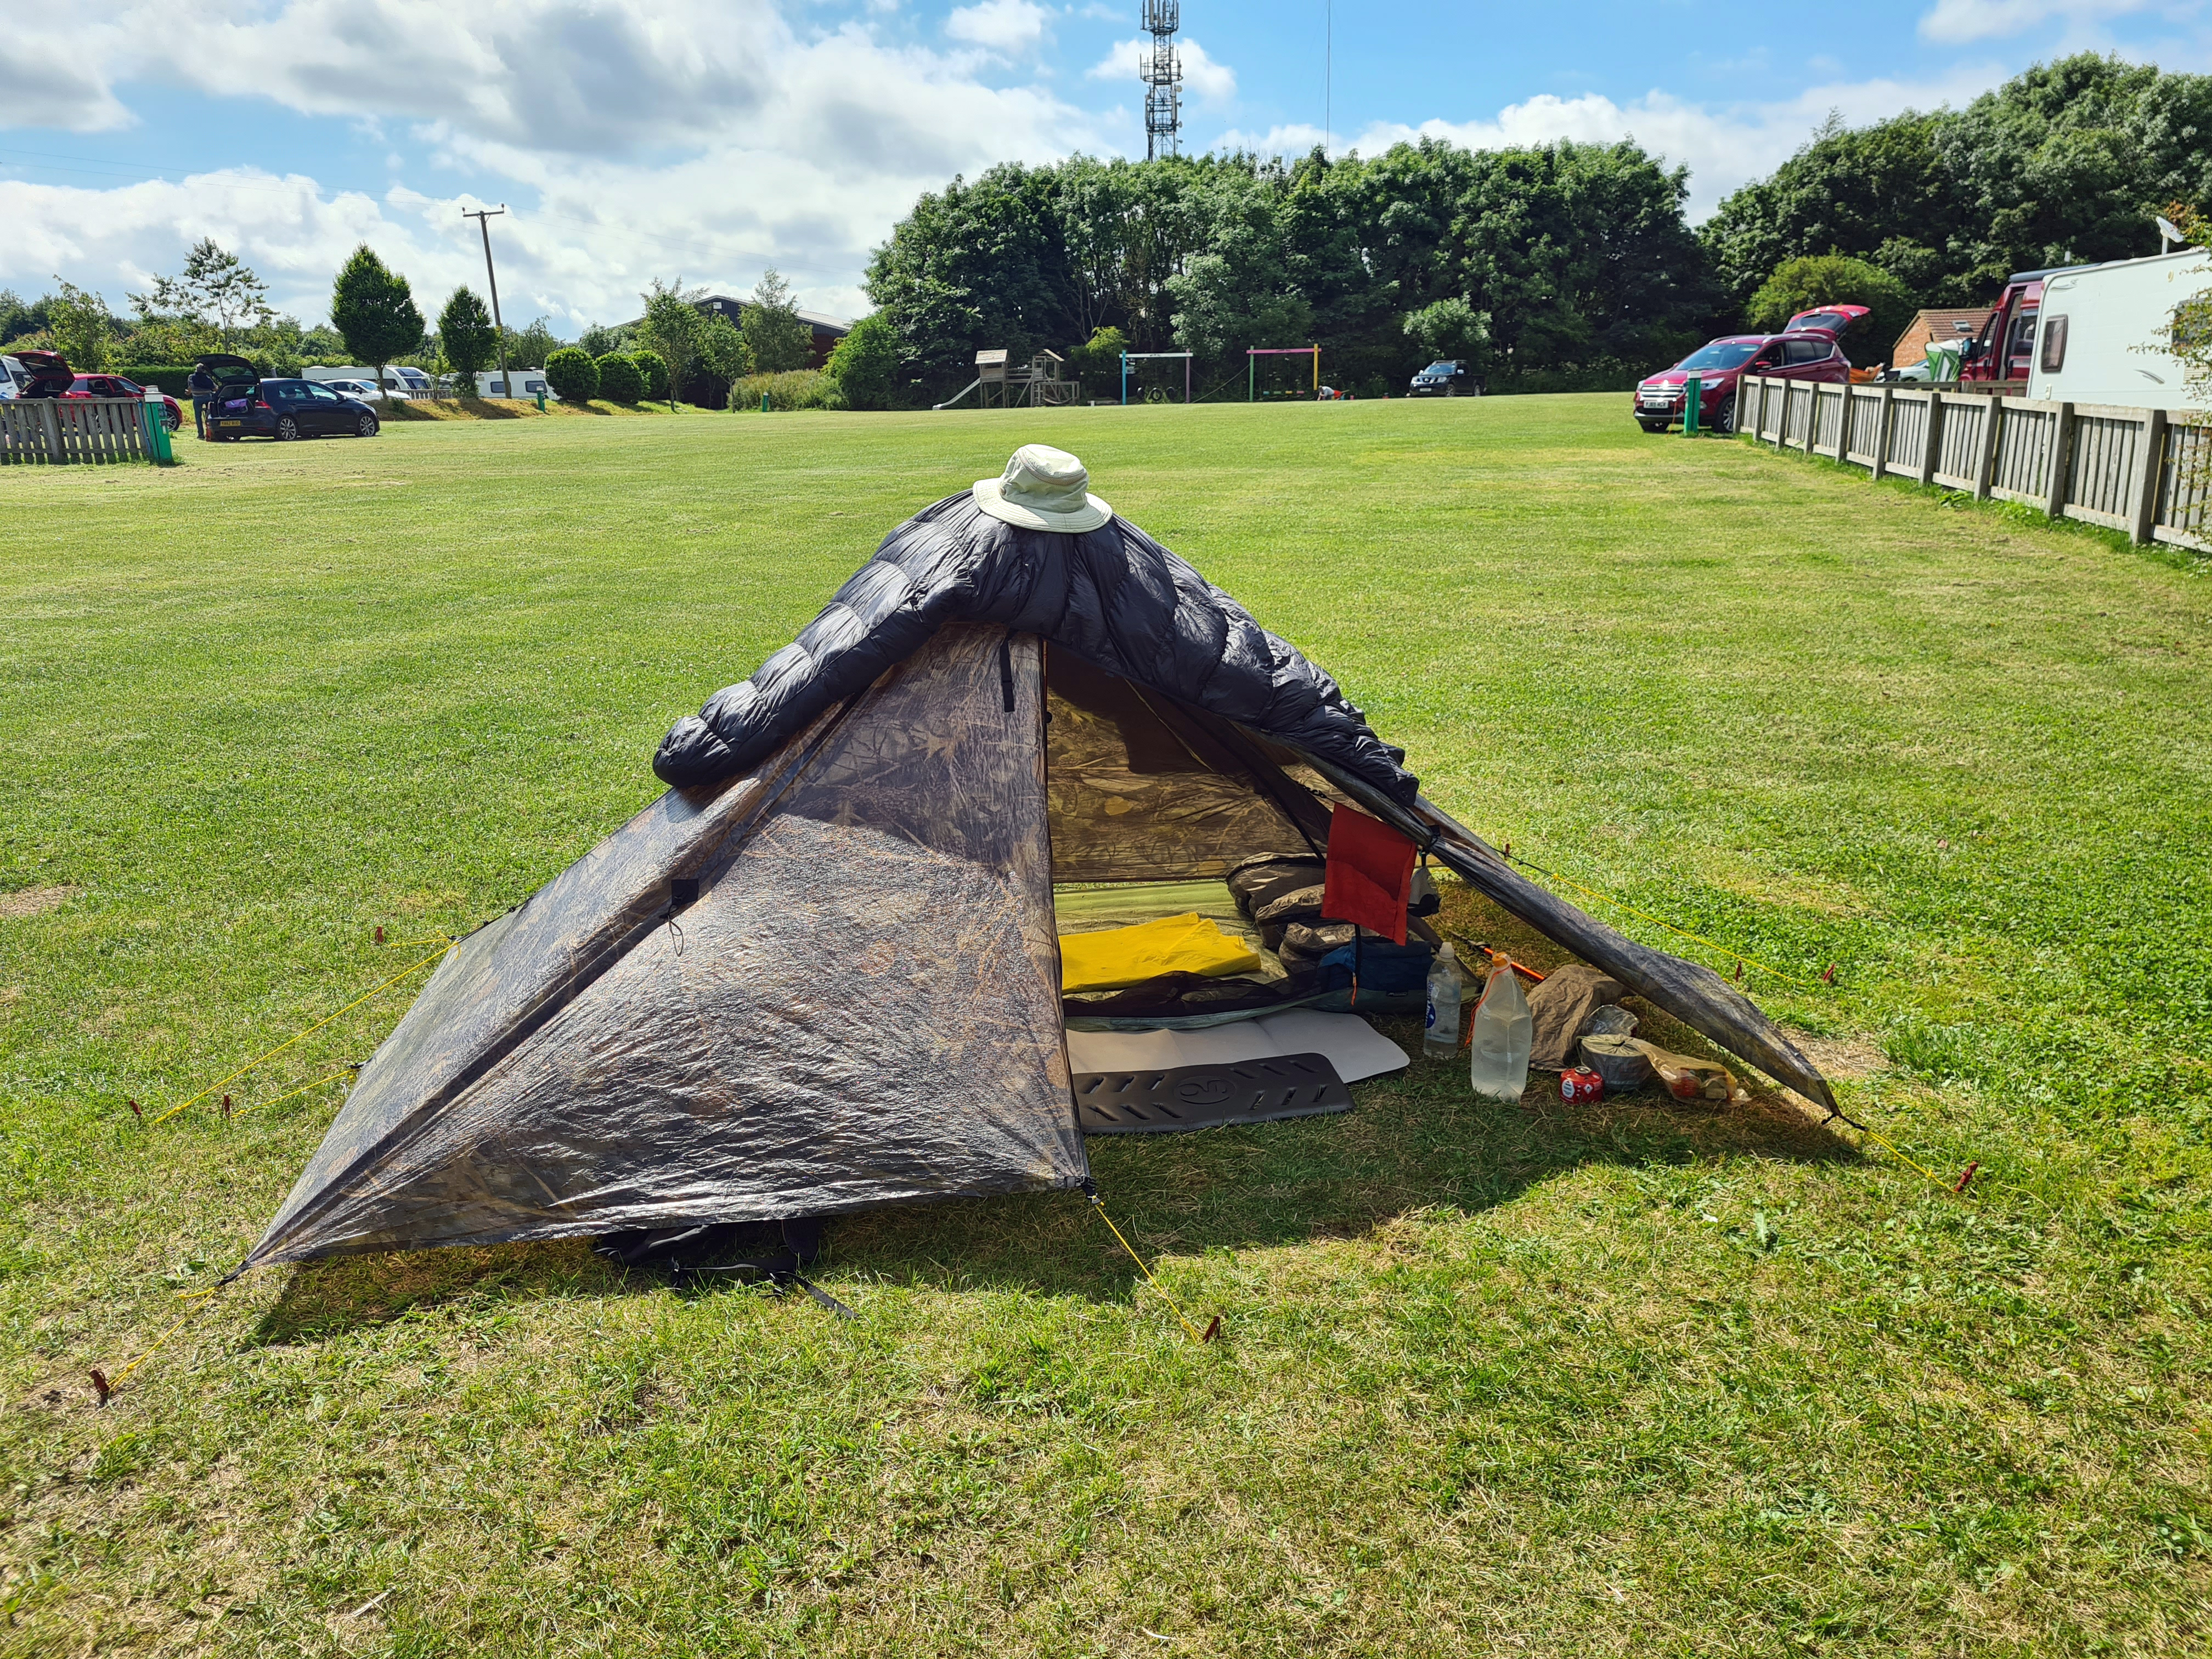 Wolds Way campsite